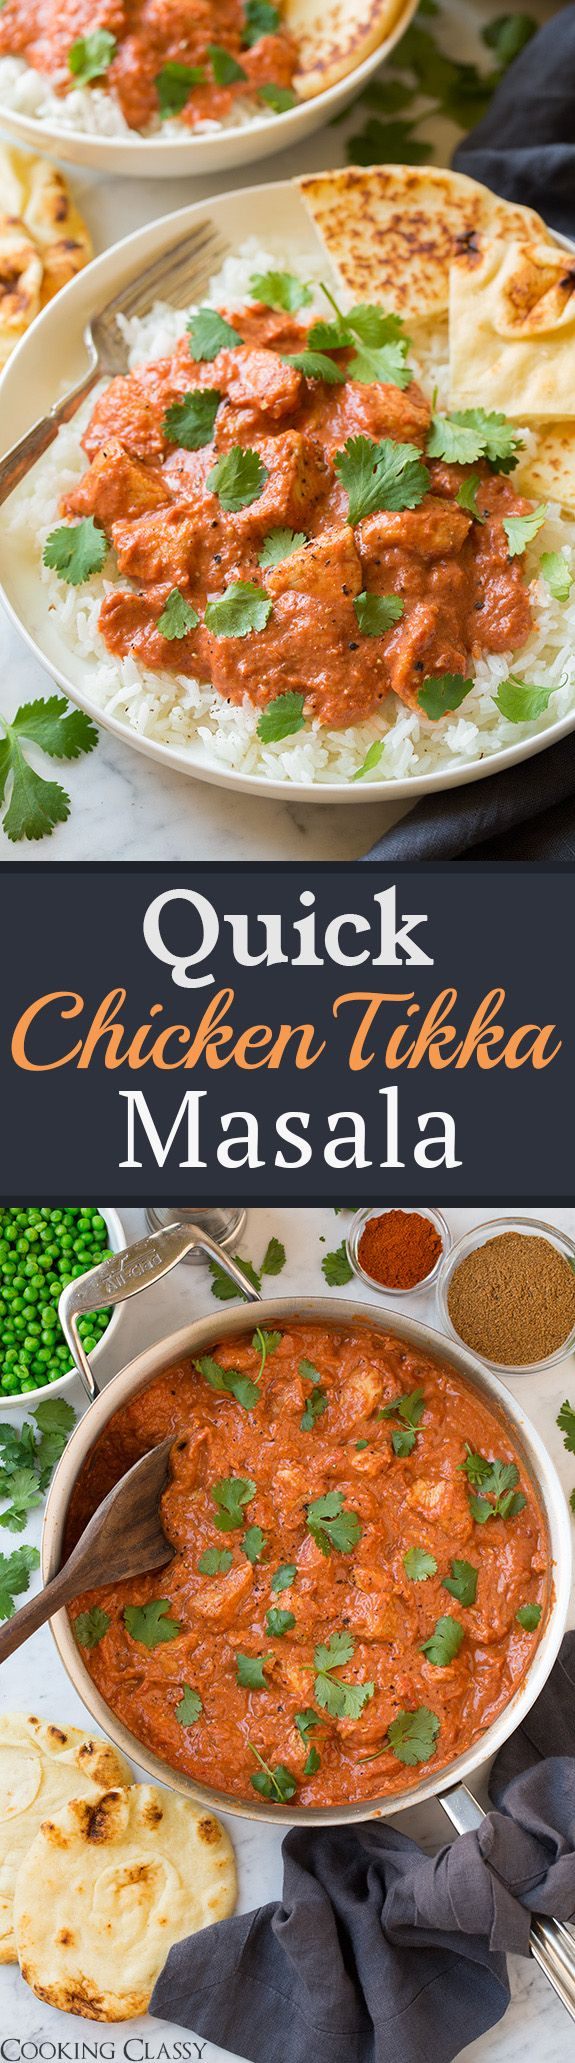 quick chicken tikka masala this is a must have recipe. Black Bedroom Furniture Sets. Home Design Ideas